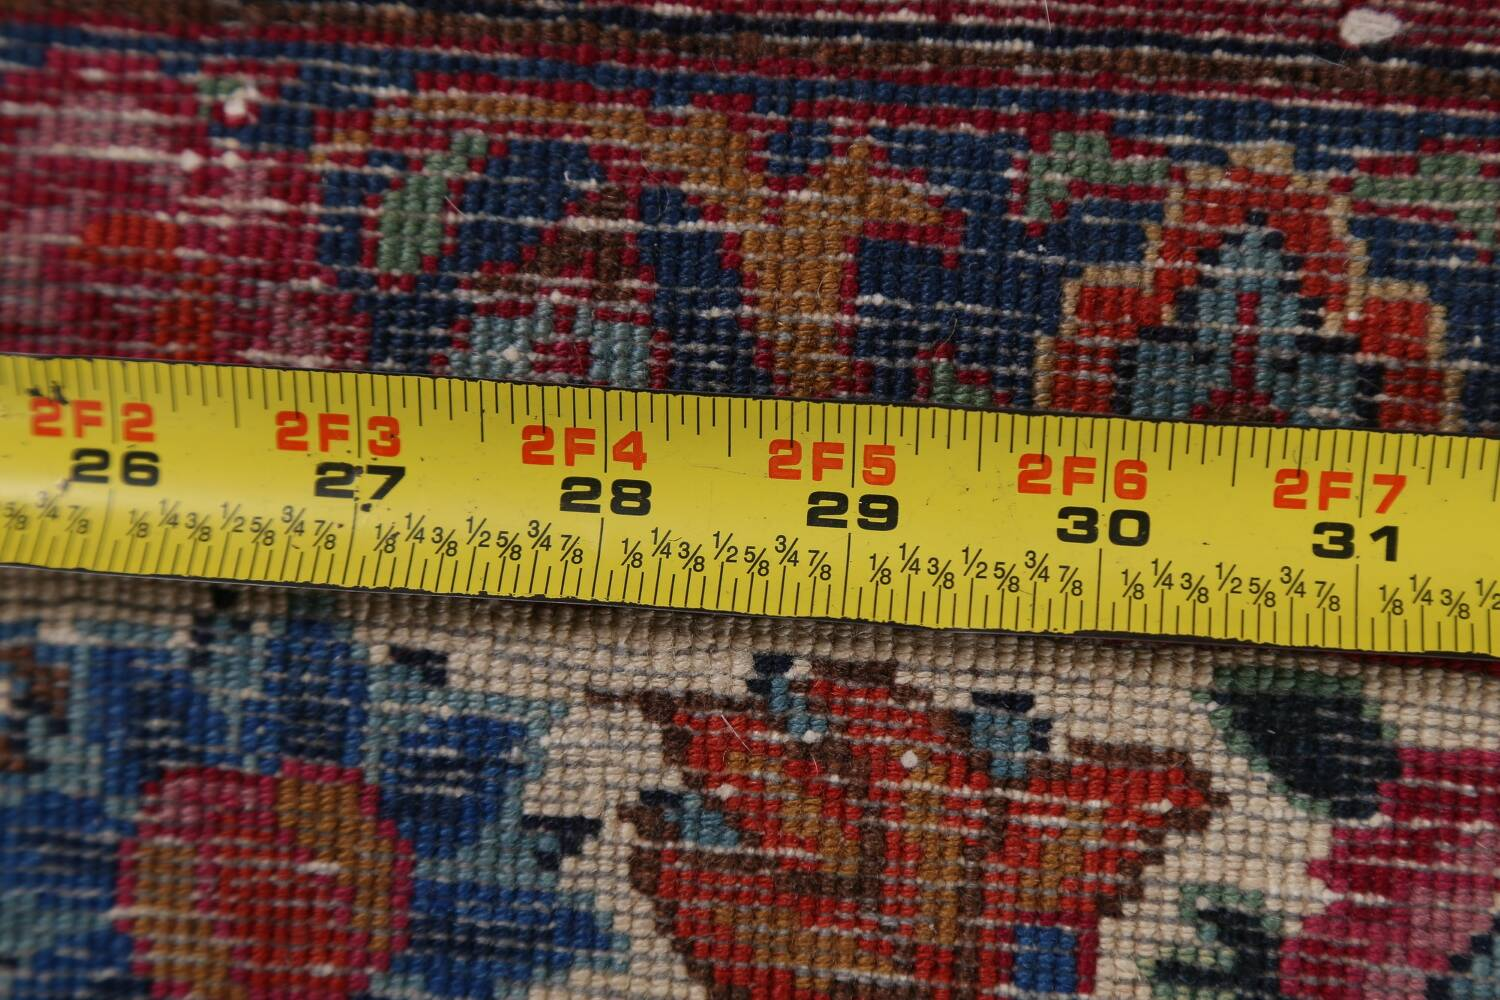 Antique Vegetable Dye Mood Persian Red Rug 11x15 image 21